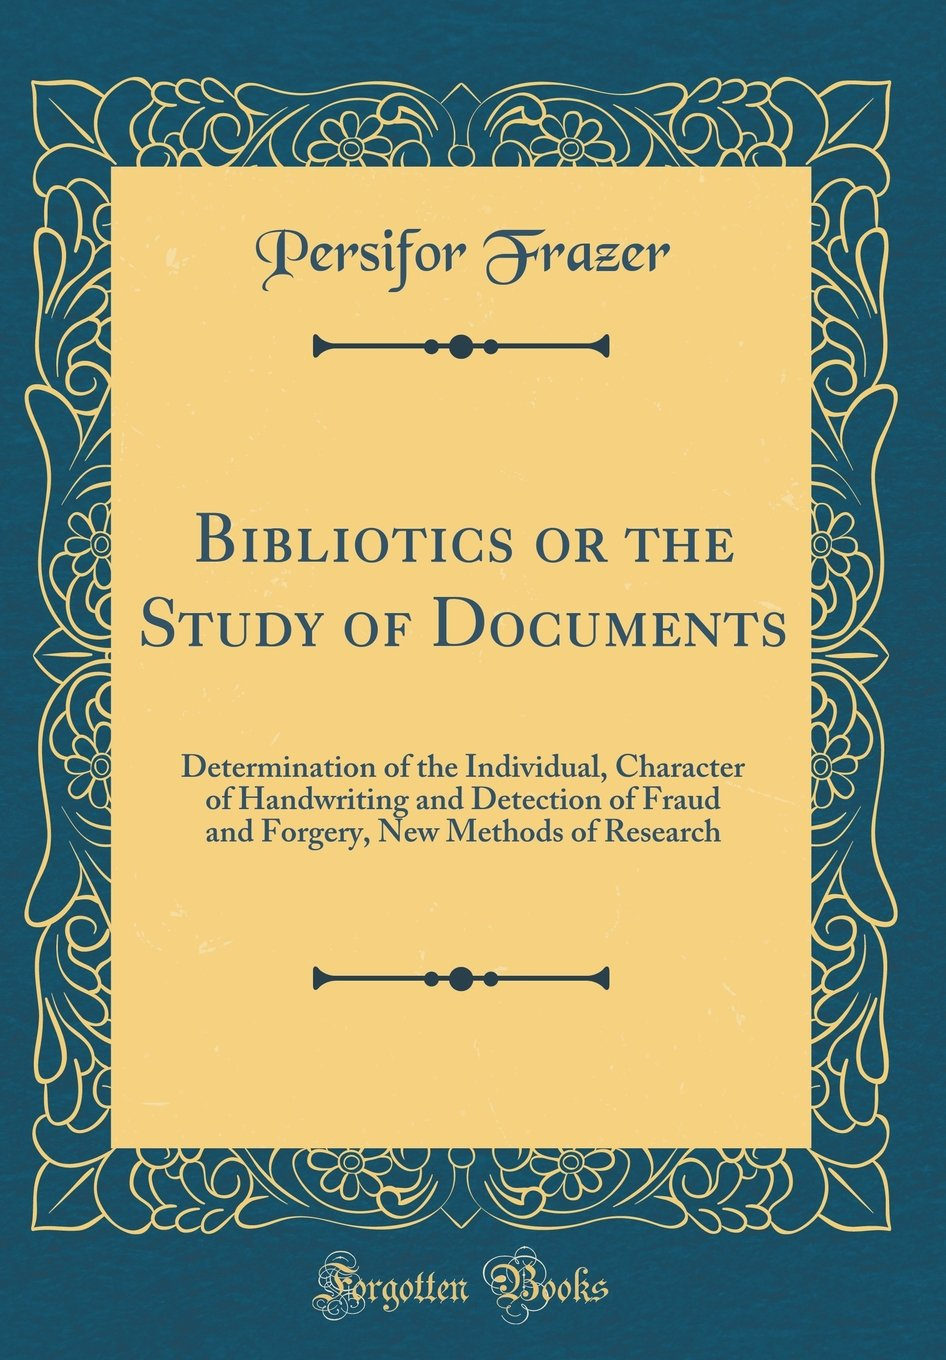 Download Bibliotics or the Study of Documents: Determination of the Individual, Character of Handwriting and Detection of Fraud and Forgery, New Methods of Research (Classic Reprint) ebook